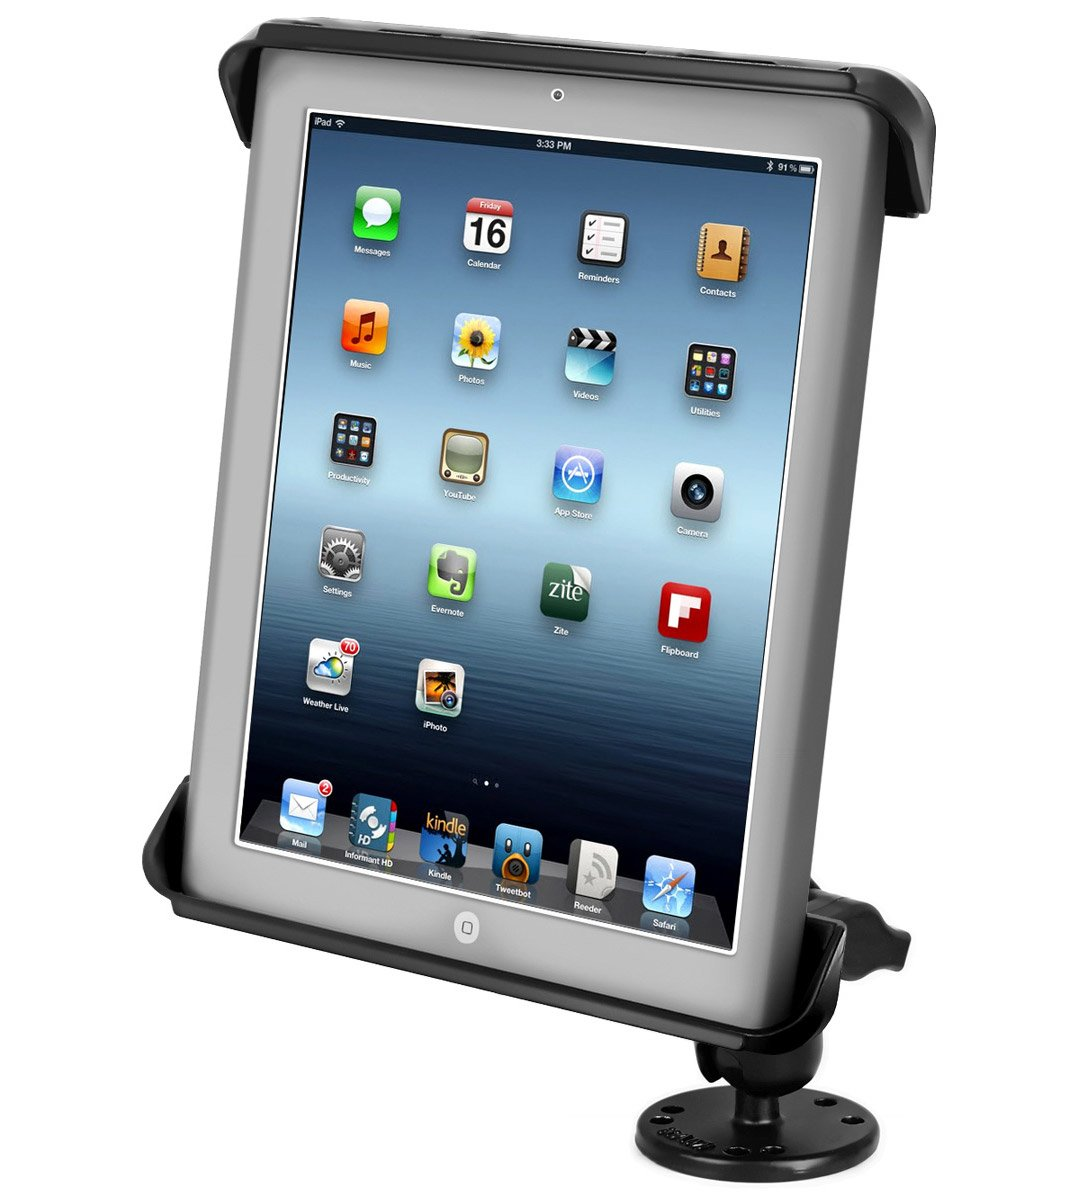 RAM MOUNTS (RAM-B-138-TAB3U Flat Surface Mount with Tab-Tite Universal Clamping Cradle for The Apple Ipad 4, Ipad 3, Ipad 2 & Ipad 1 with Or Without Light Duty Case by RAM MOUNTS